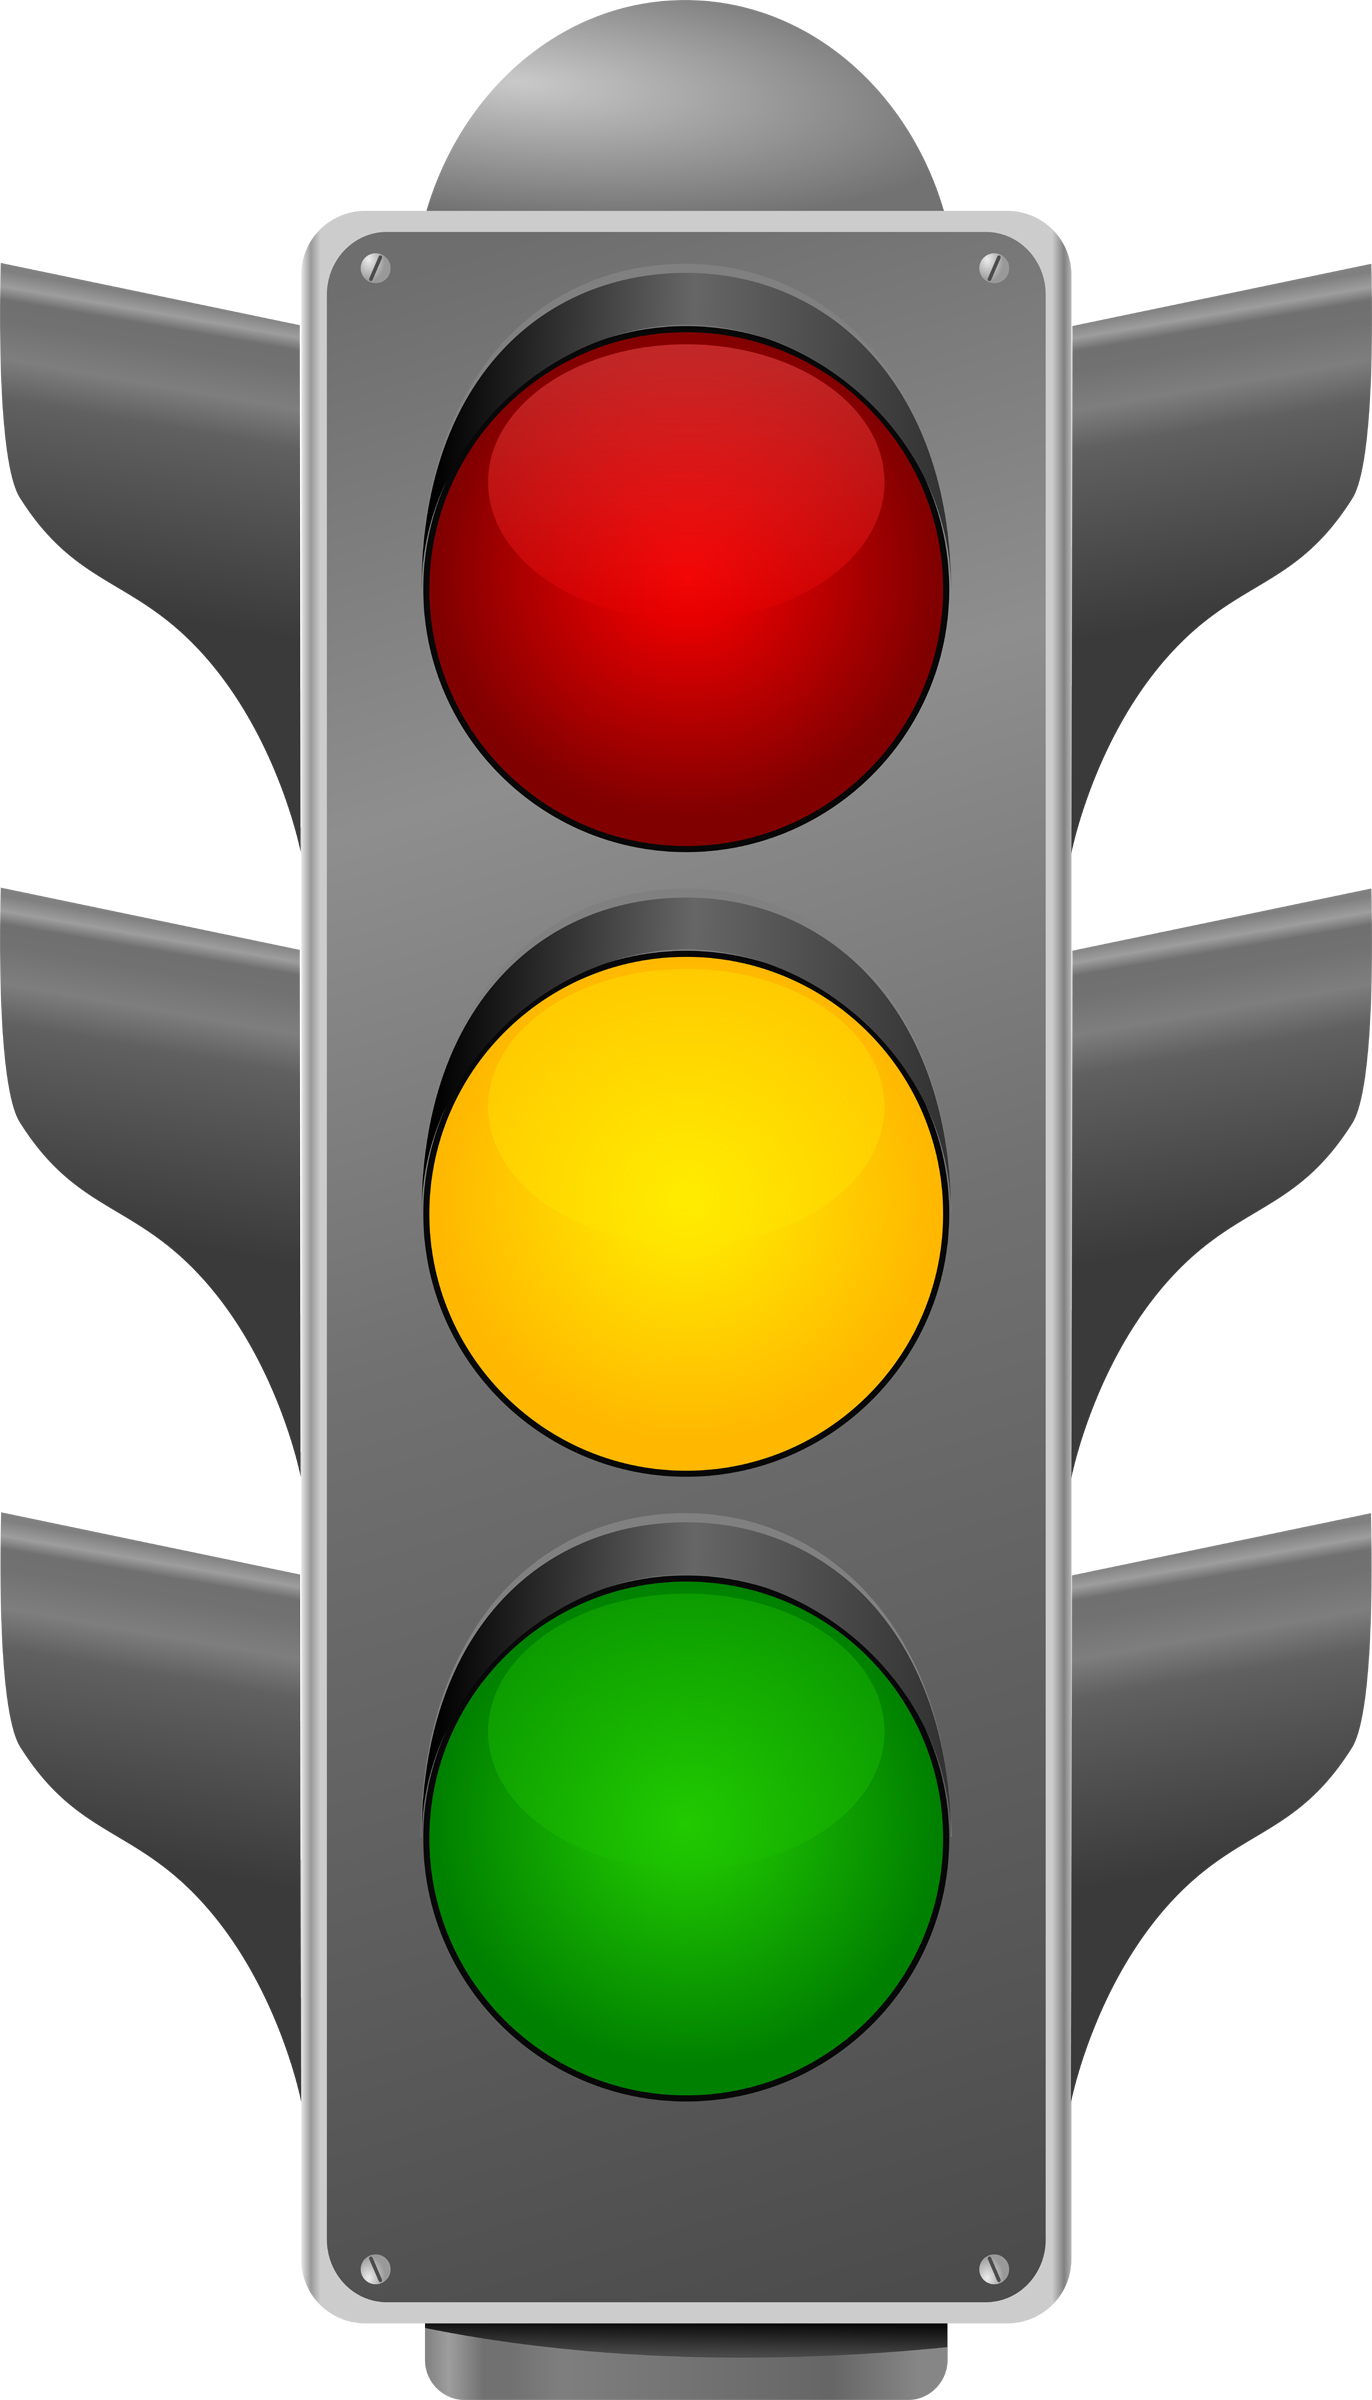 Traffic light signs clipart.